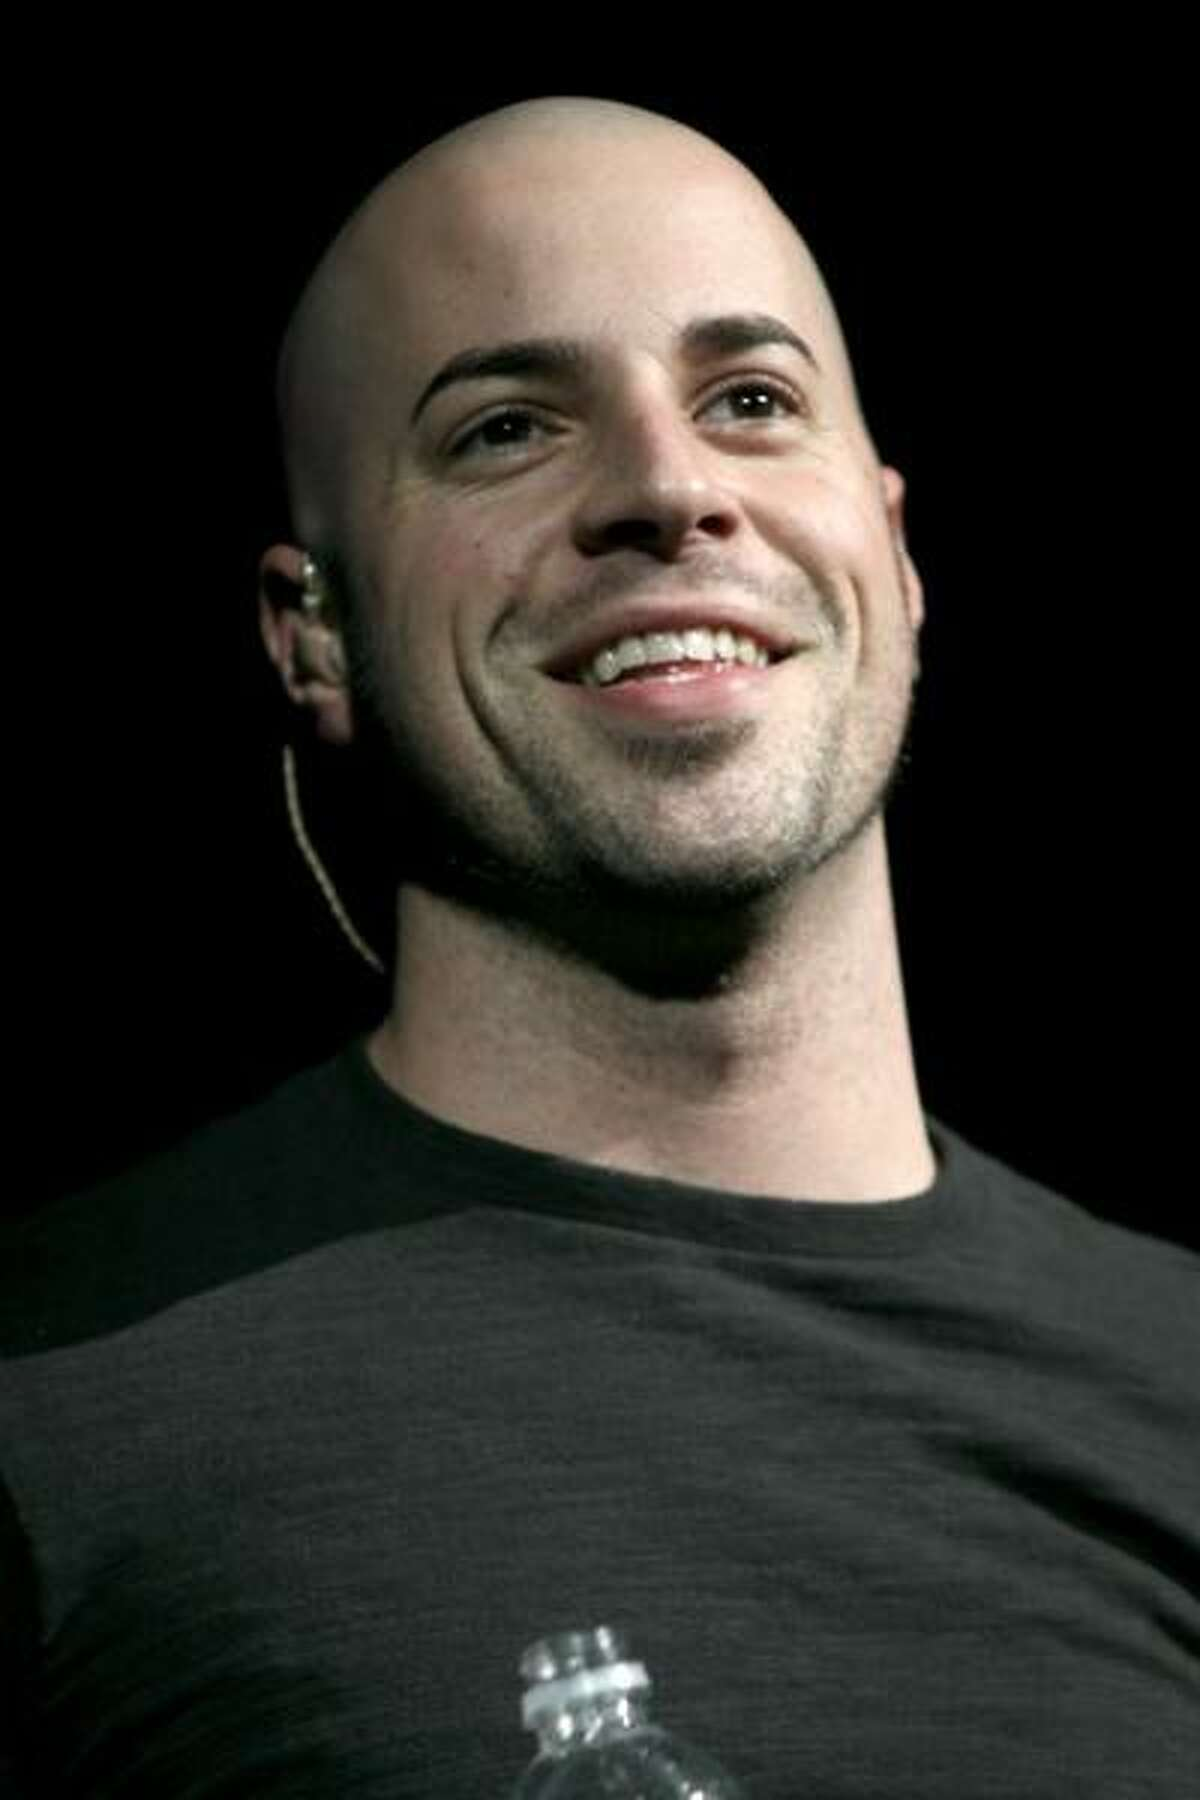 American Idol finalist Chris Daughtry is shown fronting his own band during a concert appearance.